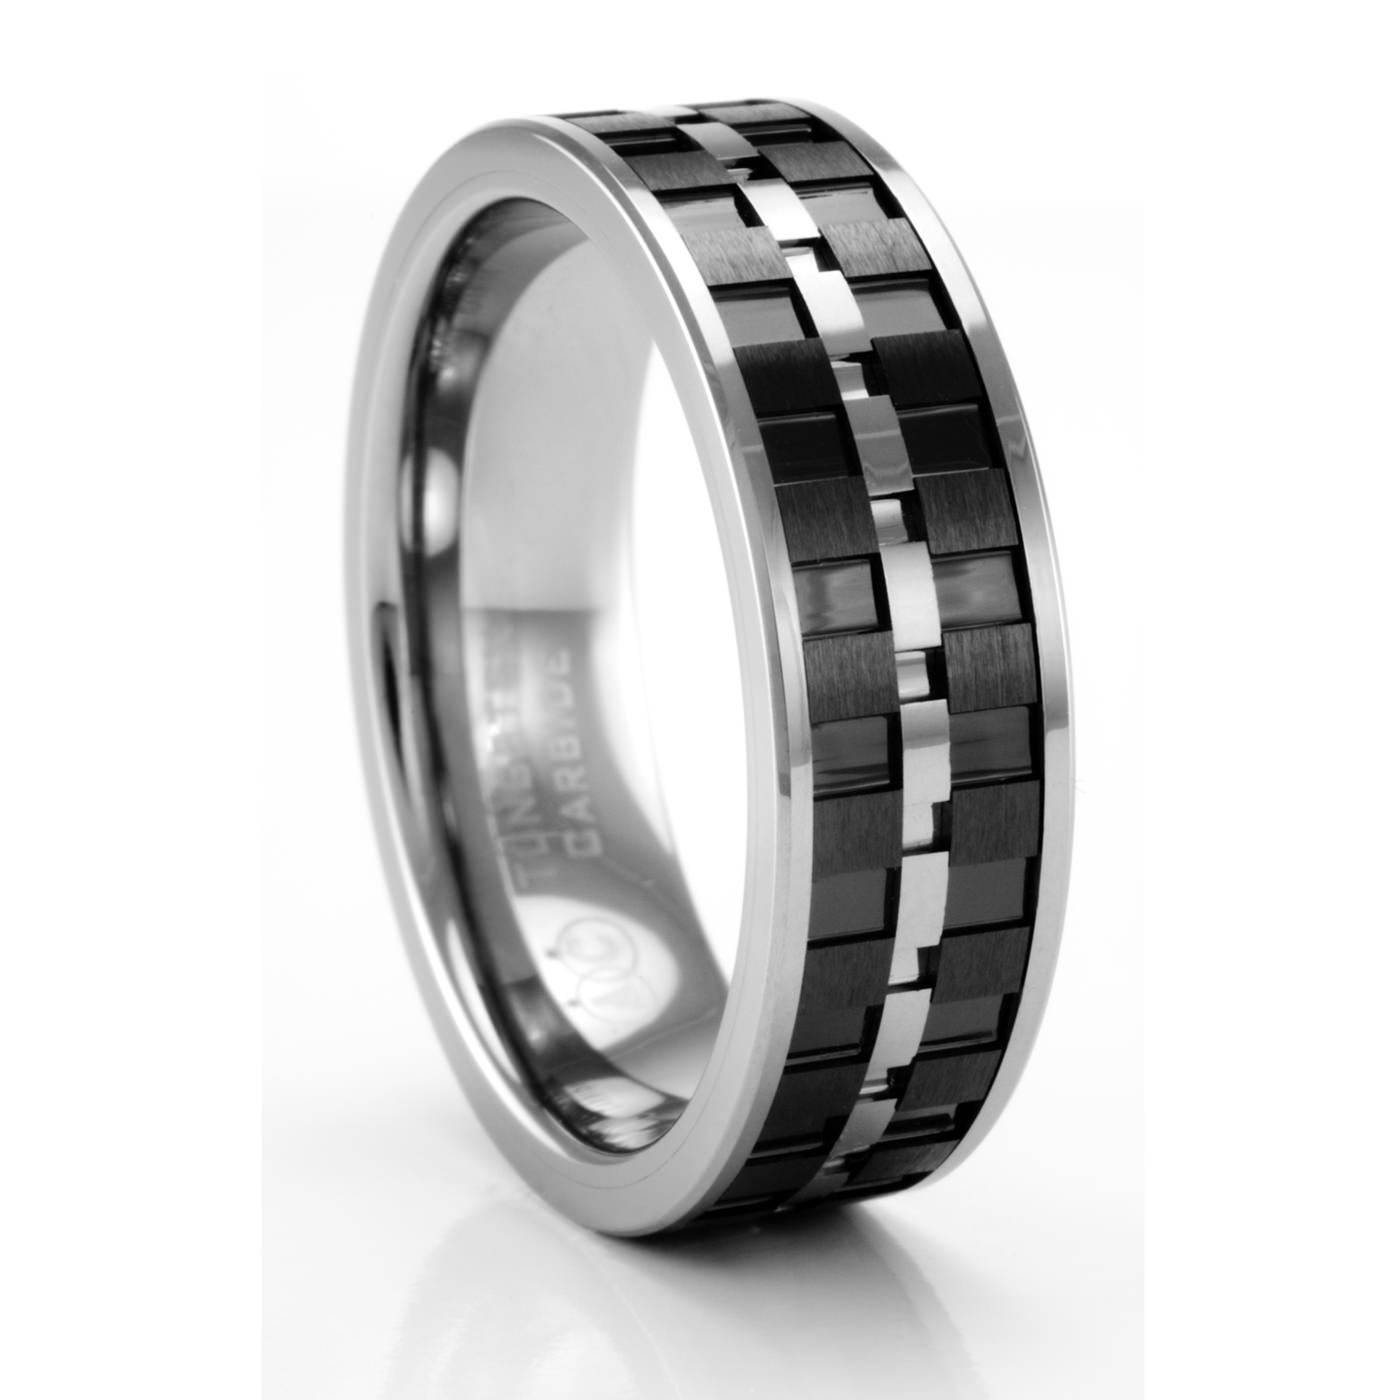 rings wedding lovely black unique carbide fiber mens men coolman carbon tungsten cute inlaied of made s custom